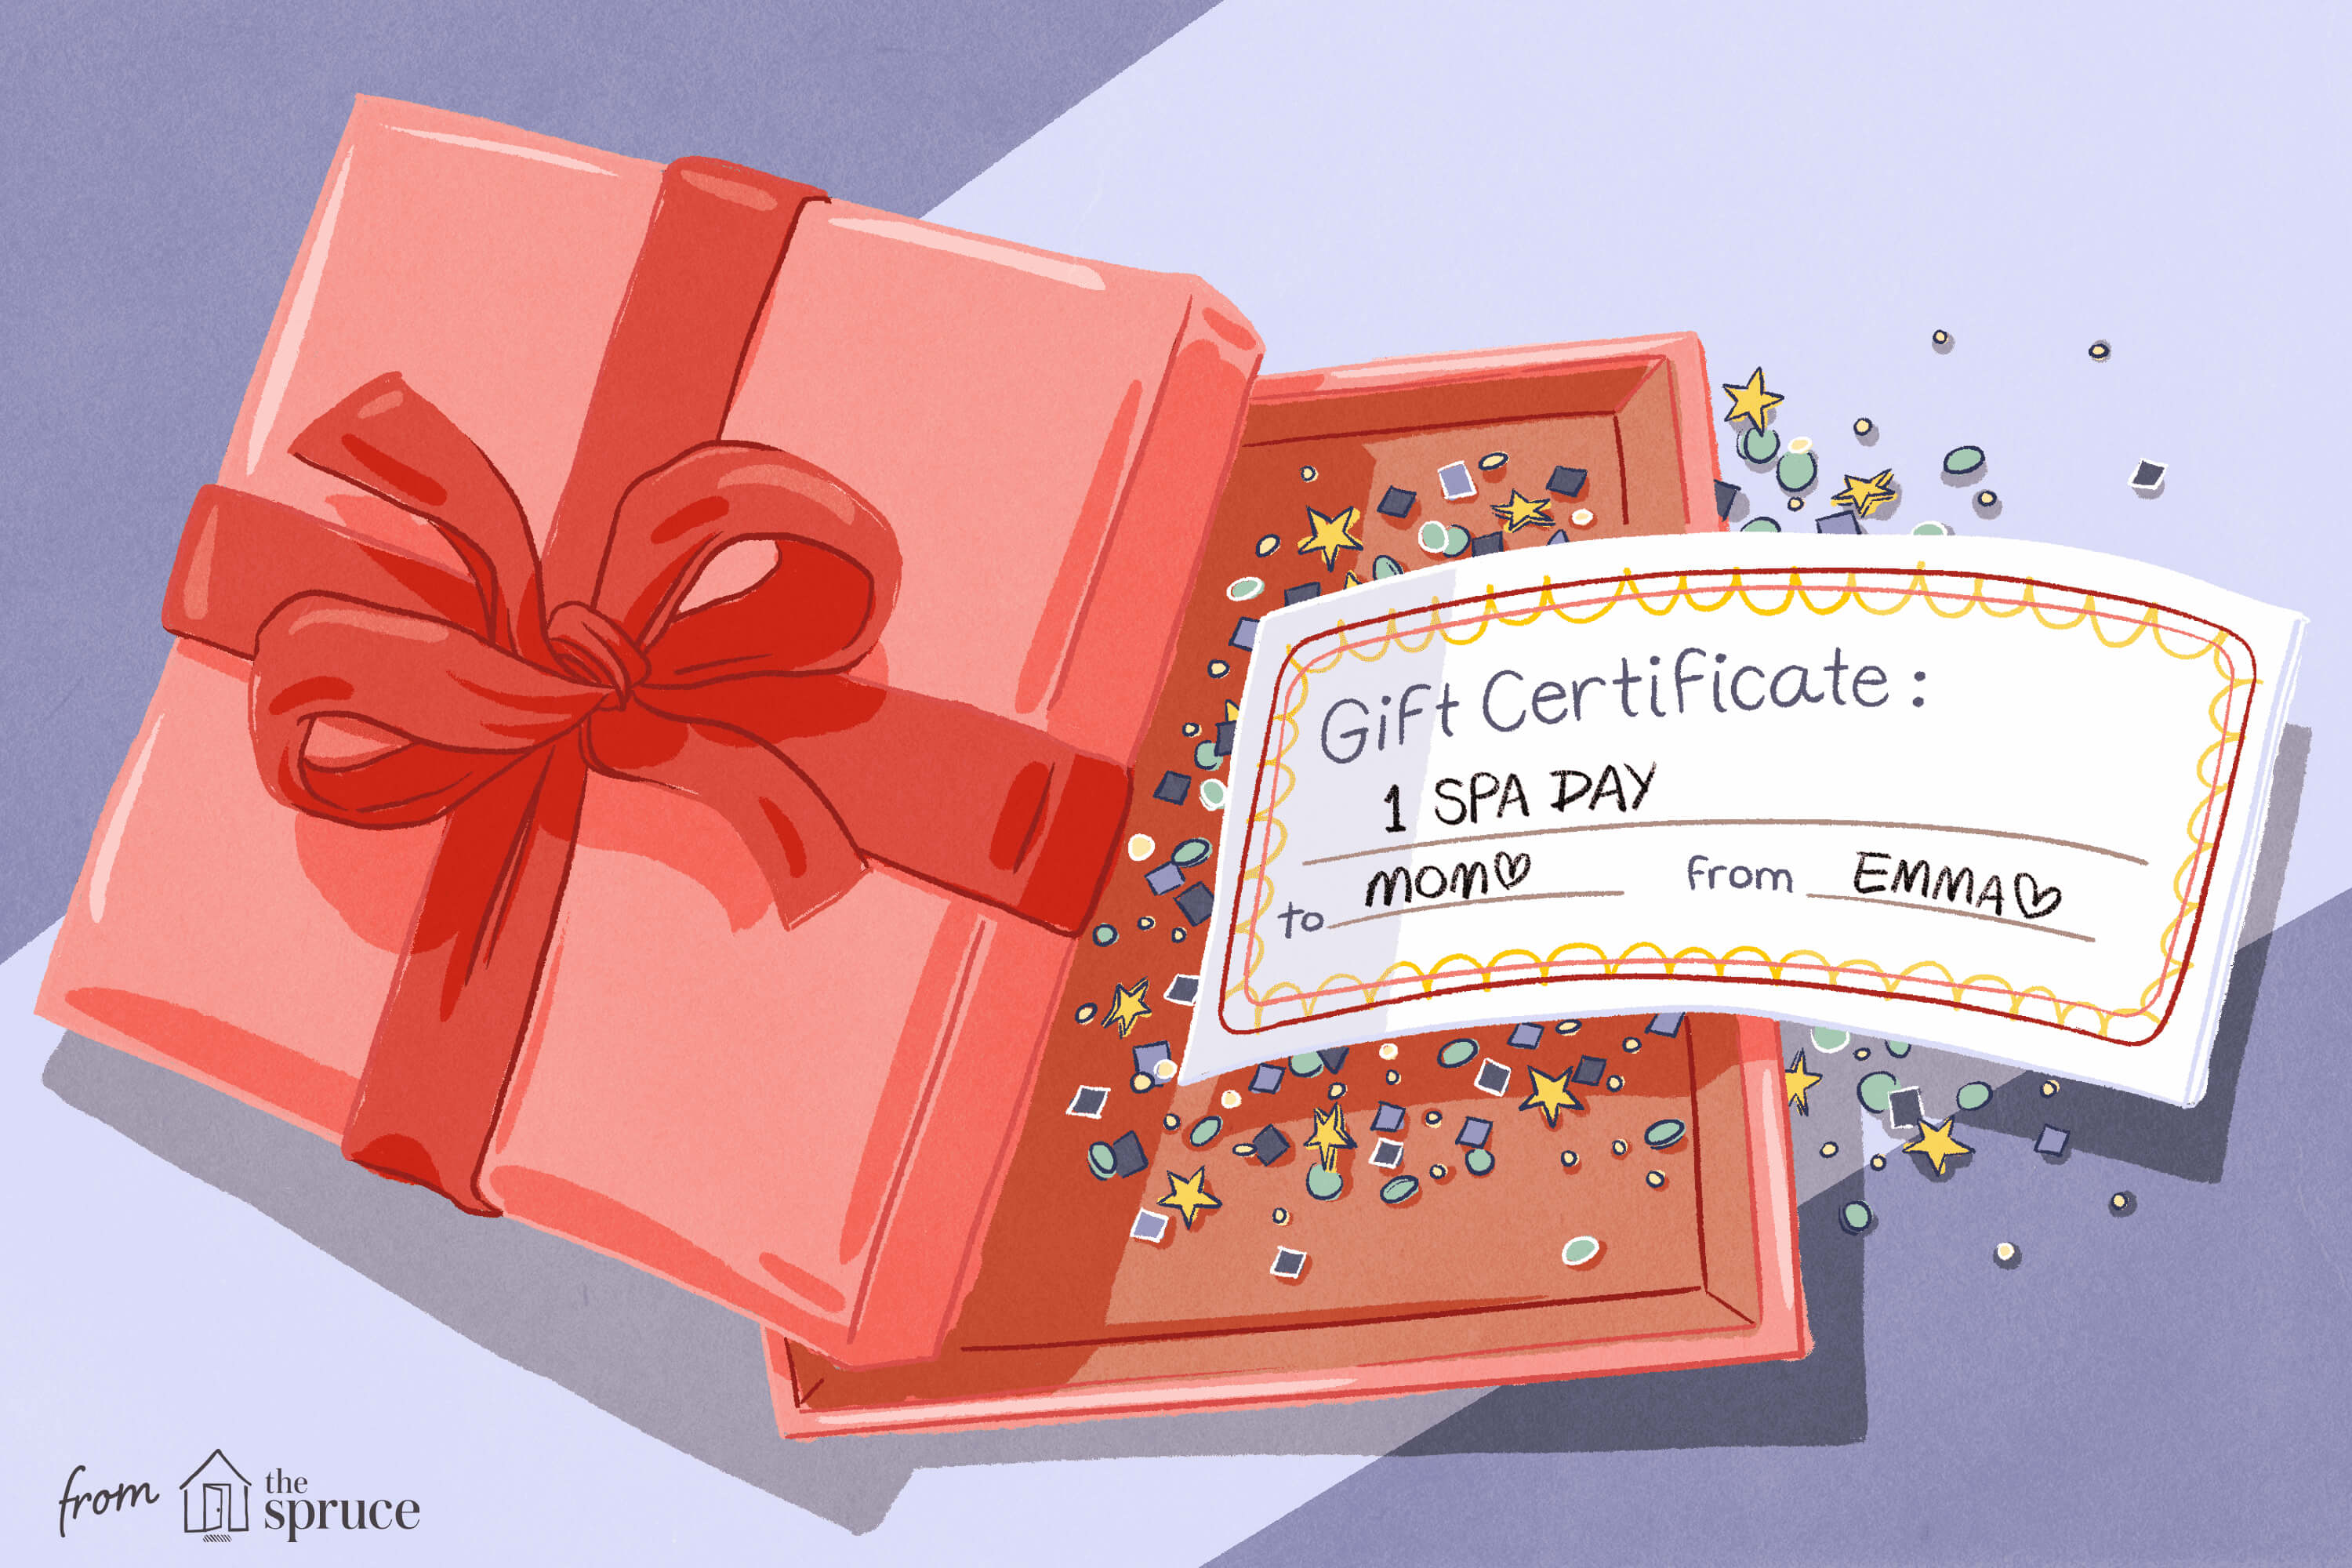 Free Gift Certificate Templates You Can Customize within Free Certificate Templates For Word 2007